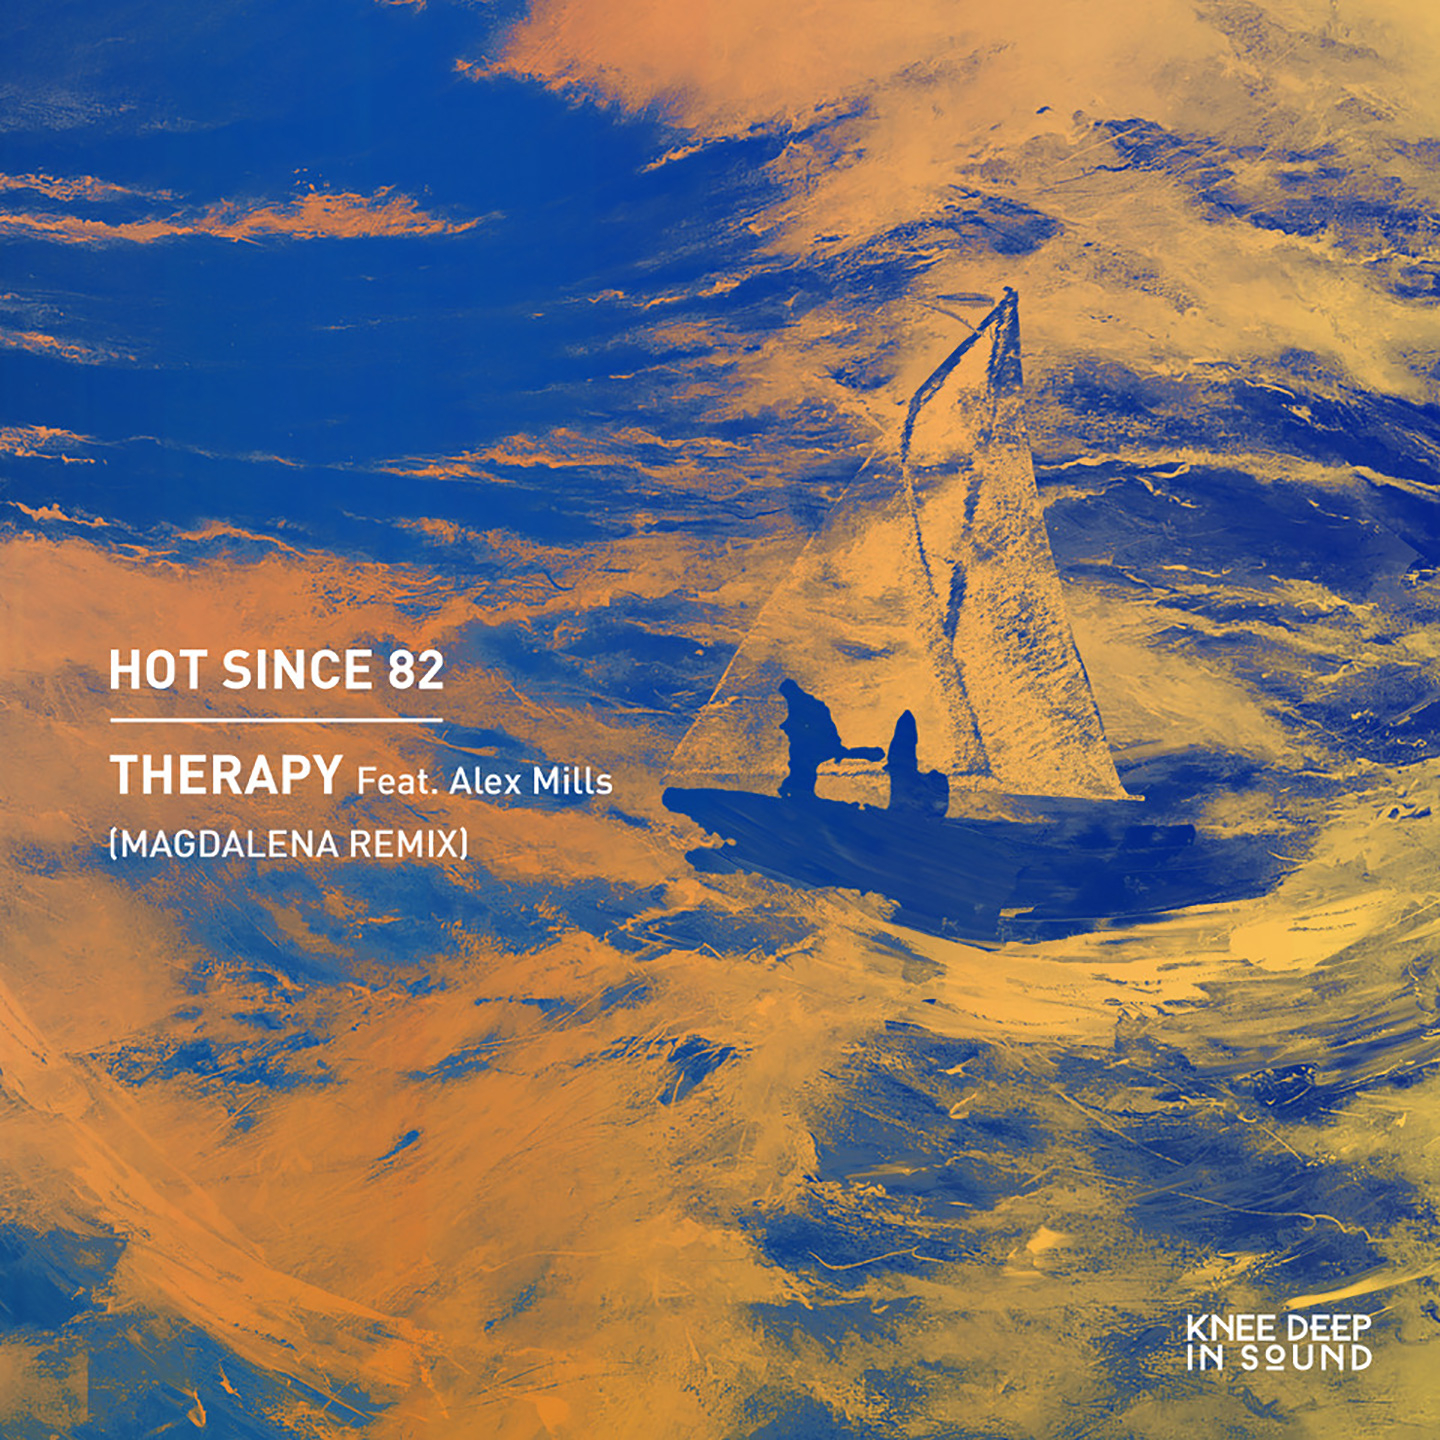 Hot Since 82 - Therapy (Magdalena Remix)